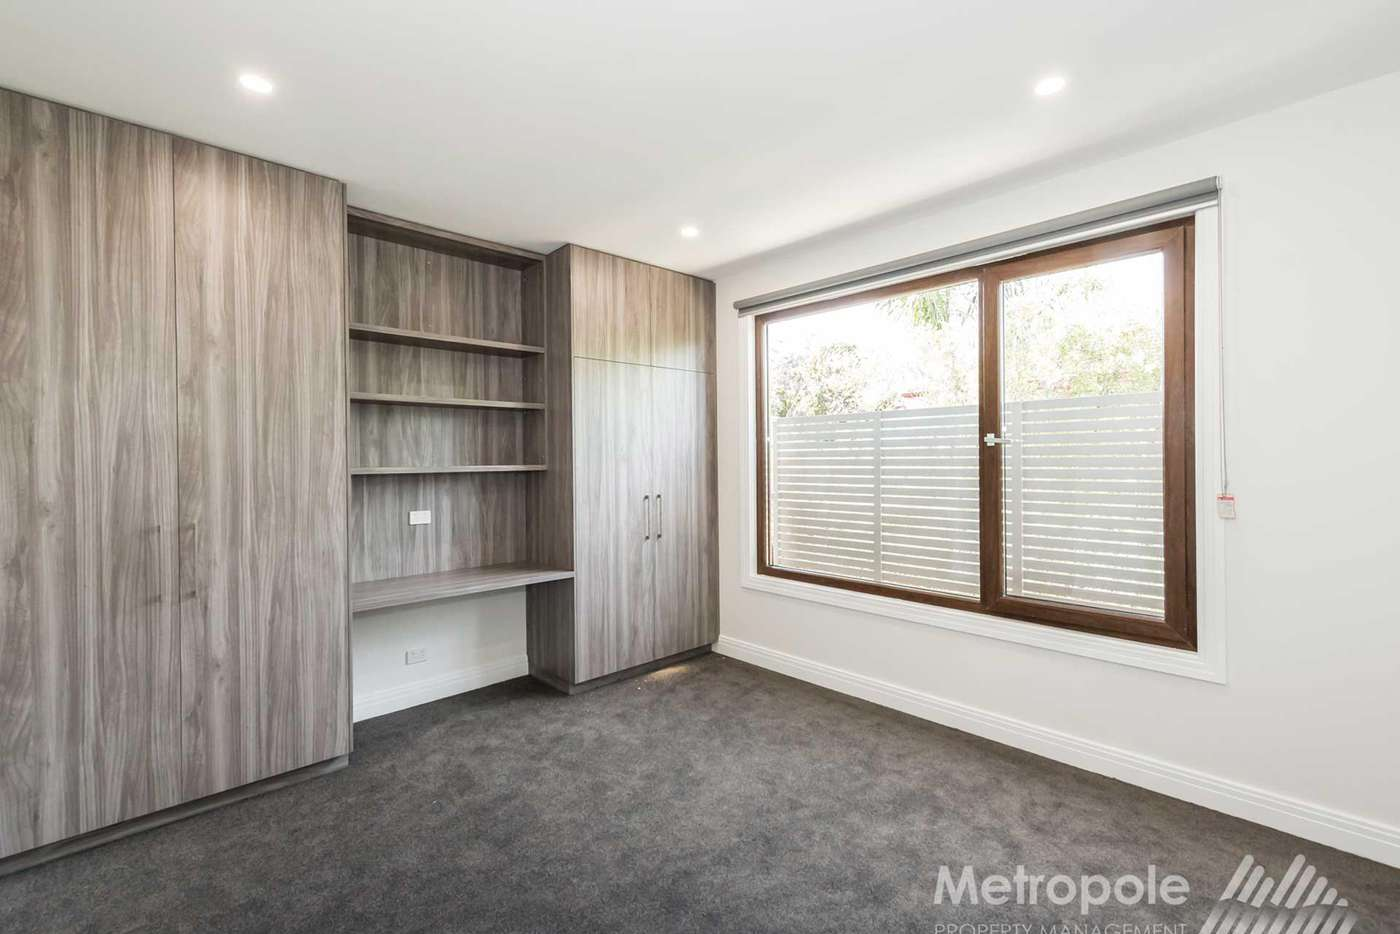 Seventh view of Homely townhouse listing, 44A Wavell Street, Bentleigh VIC 3204